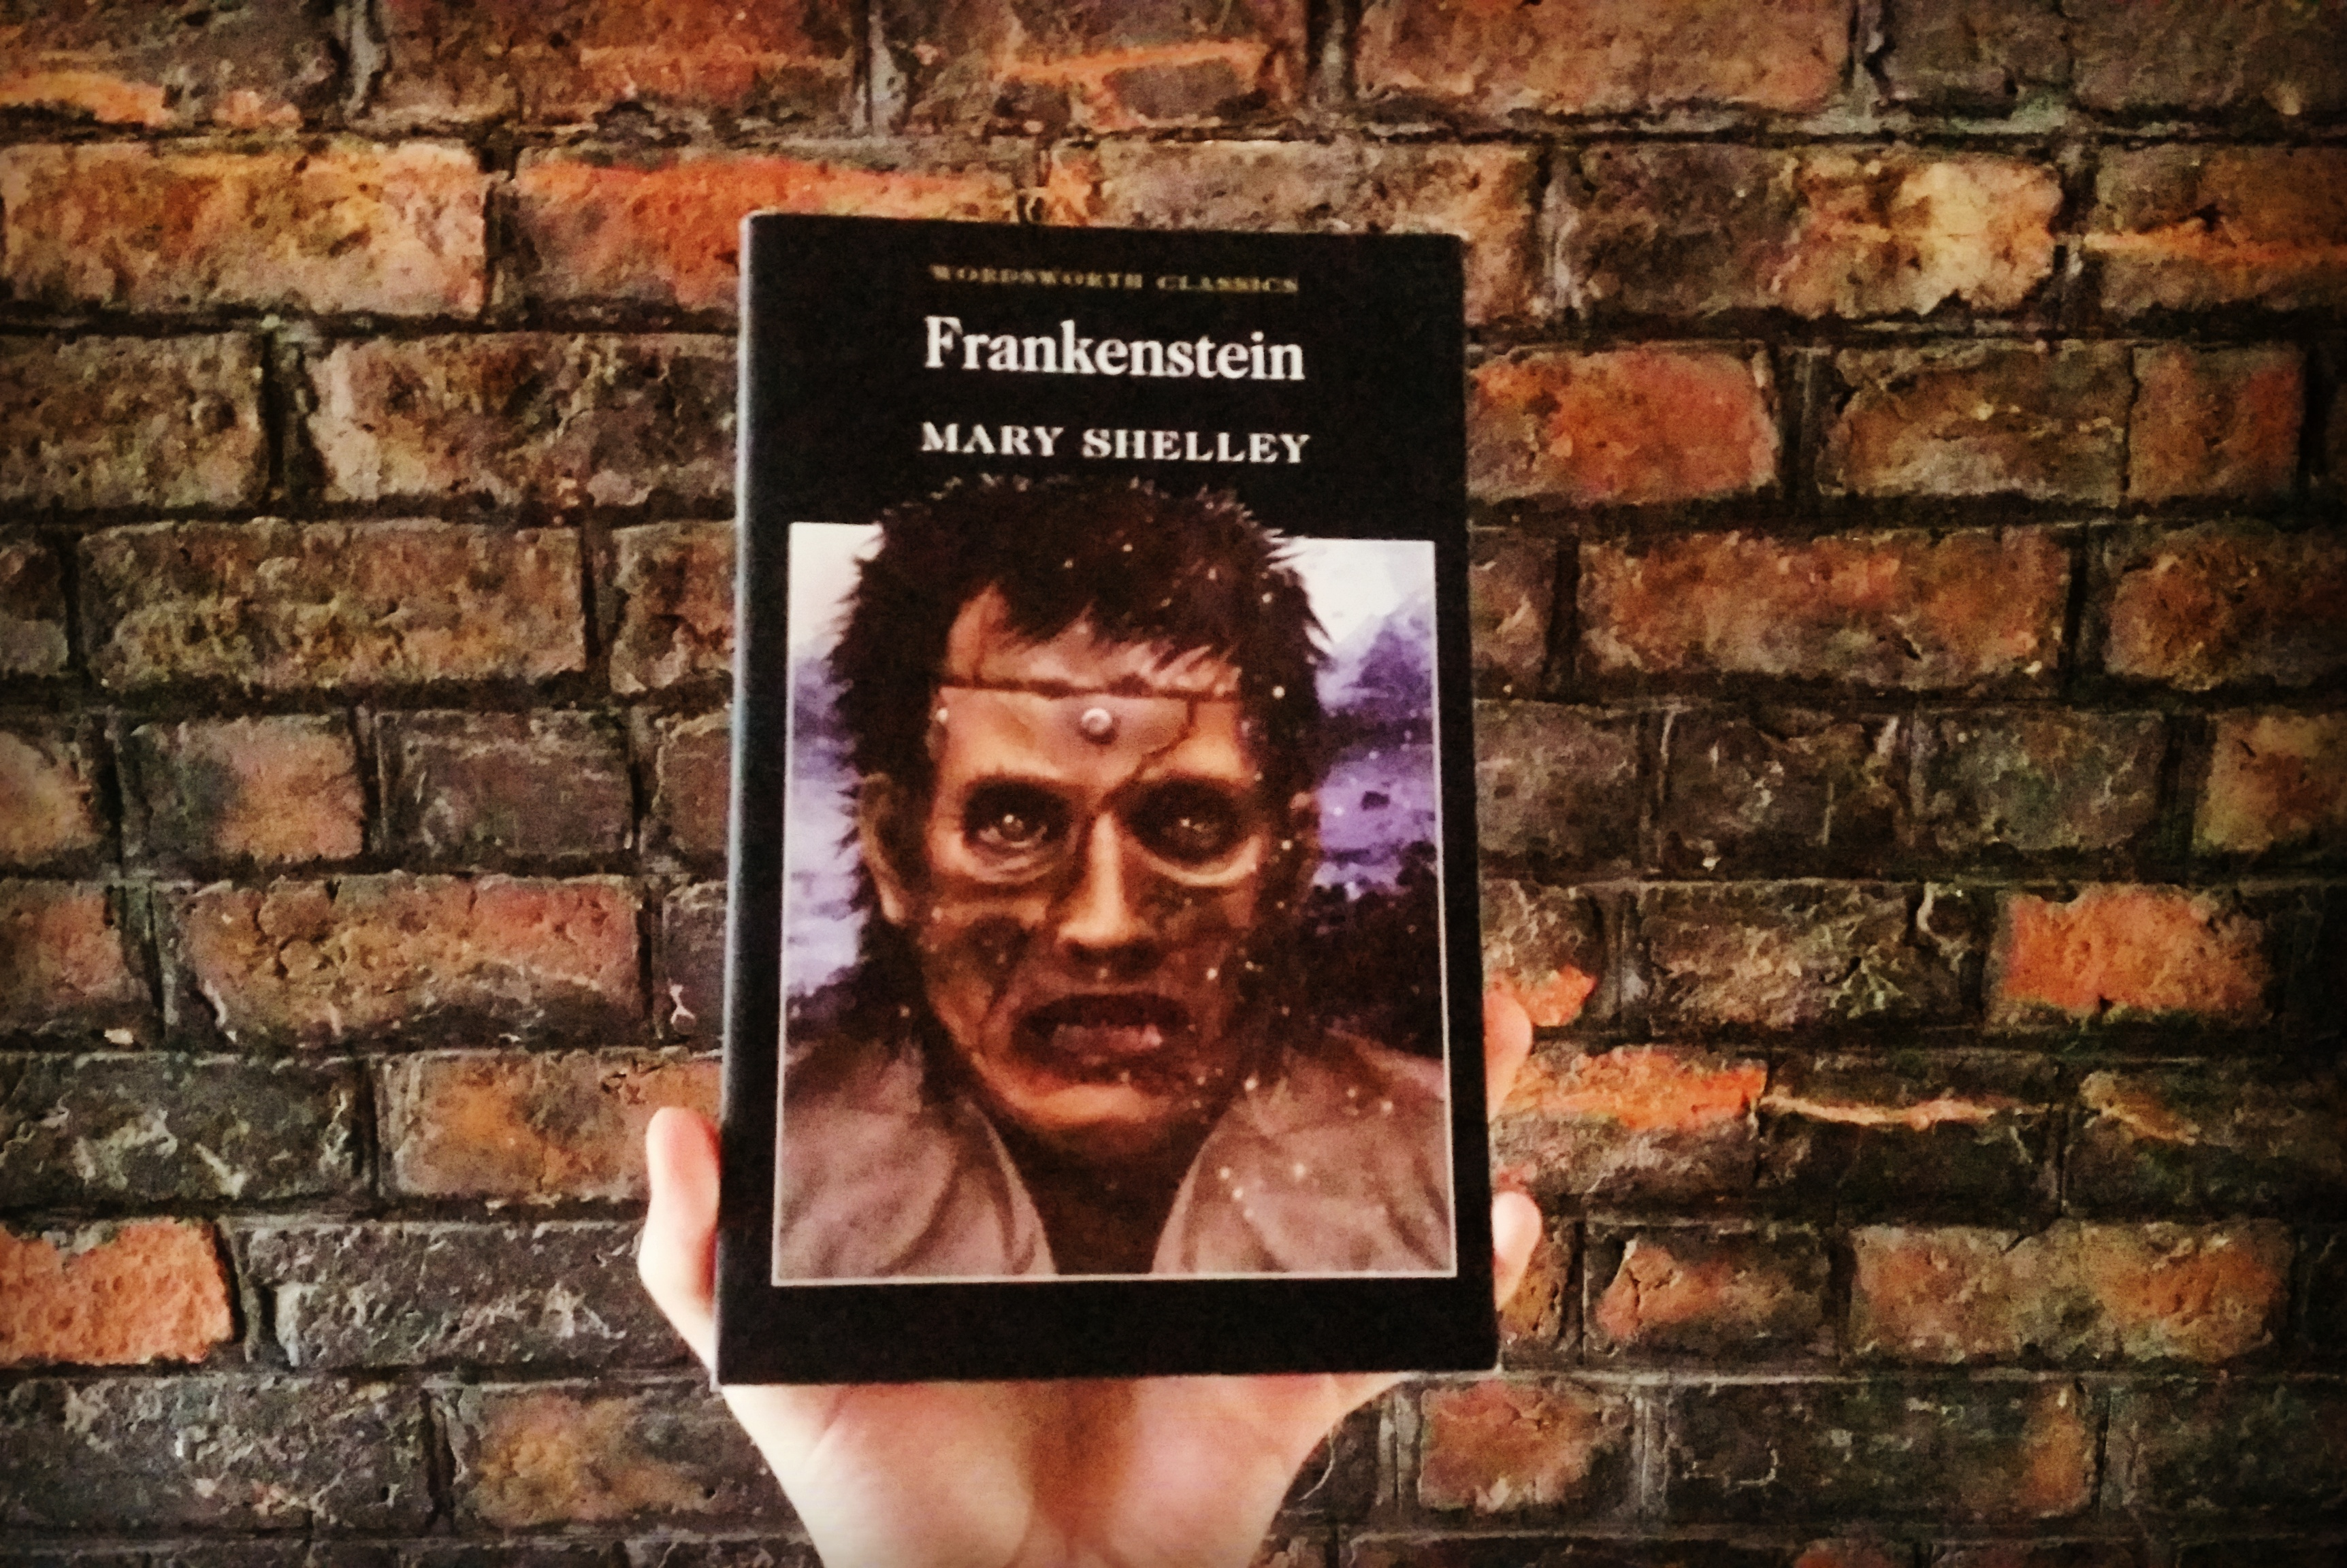 frankenstein by mary shelley essays Frankenstein mary shelley justine mortiz am essay: possible prosecutional summation to the jury used to convict justine.